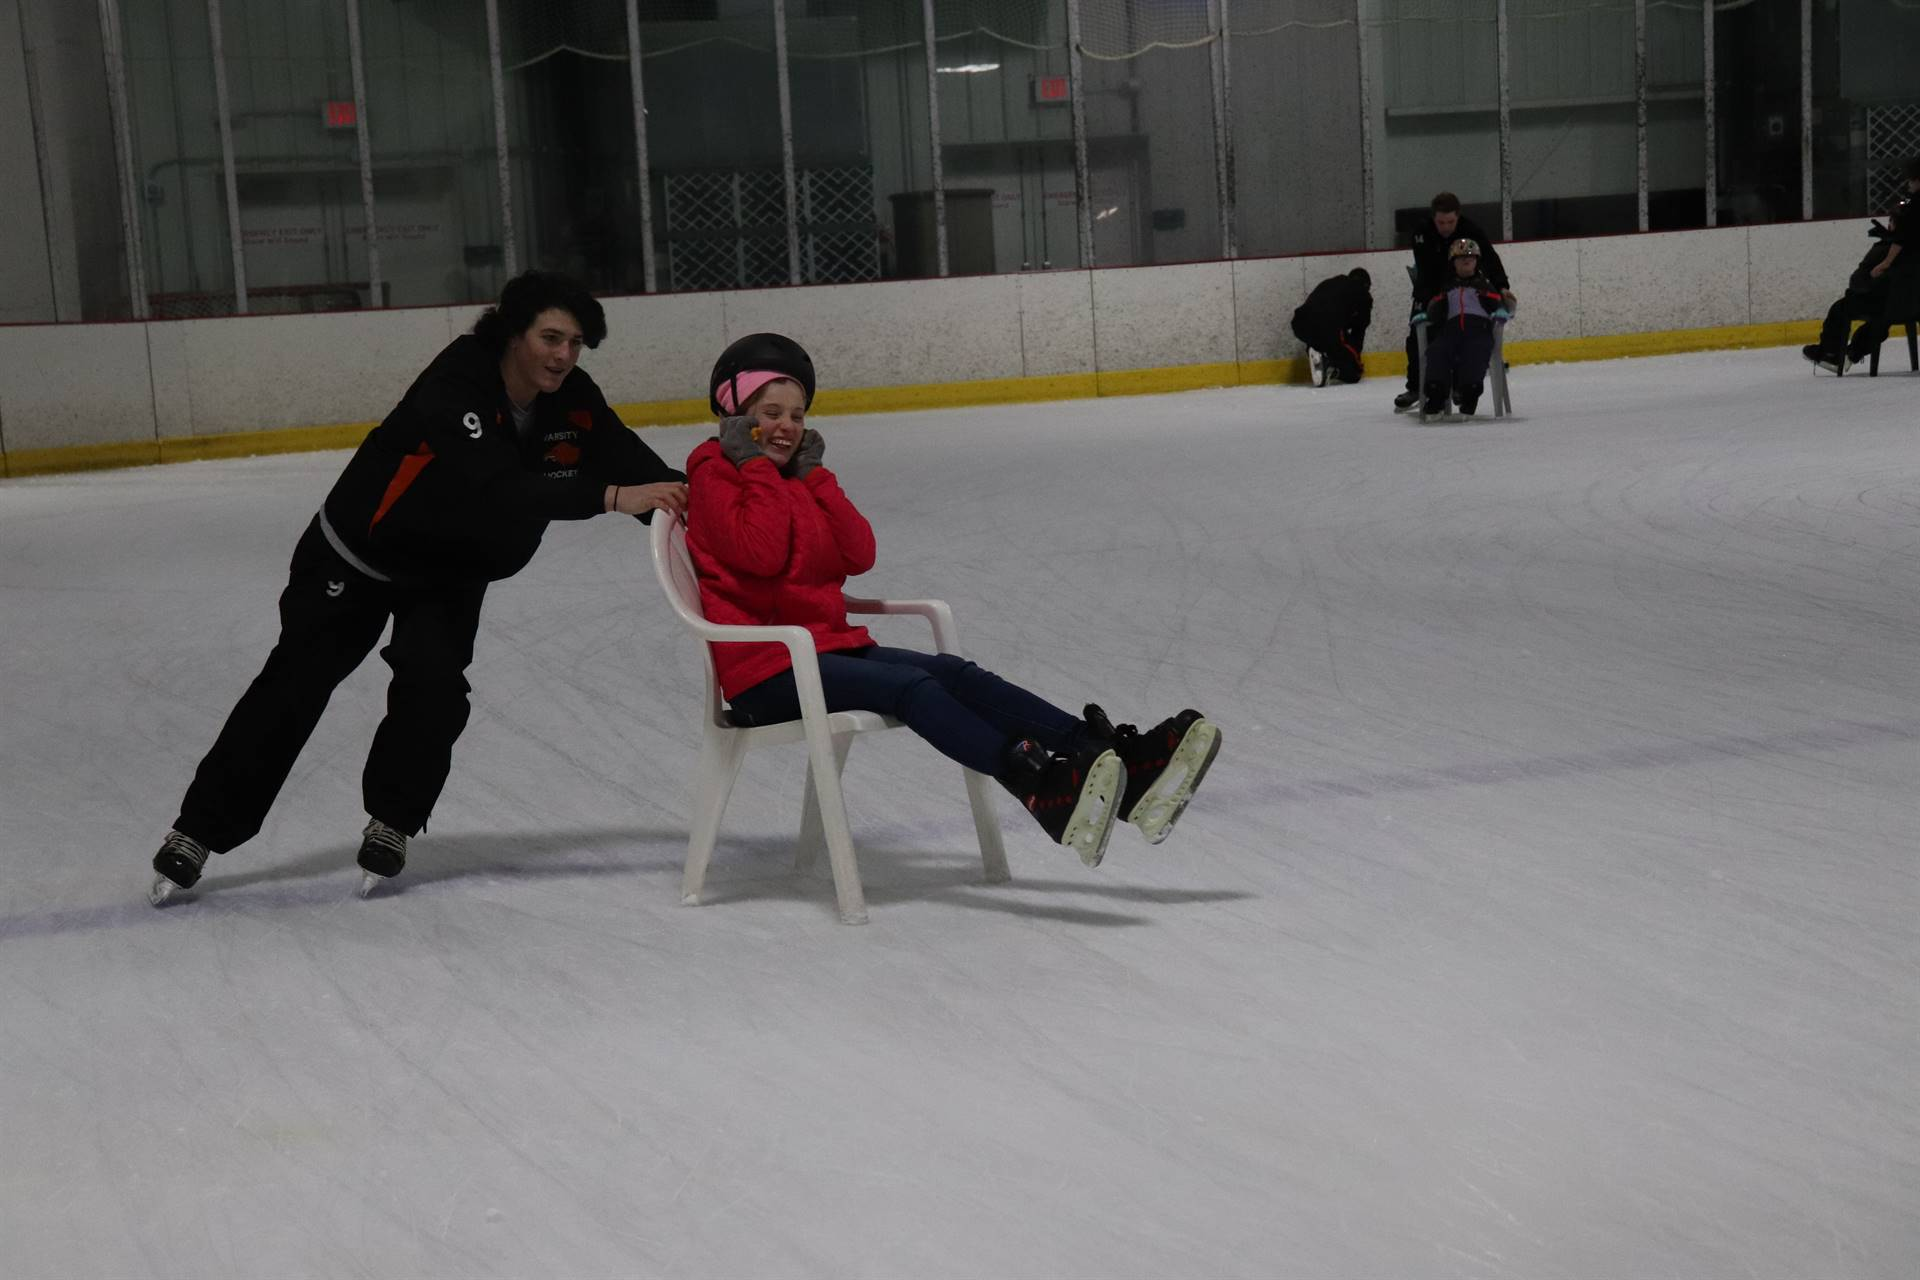 Hockey player pushing a student on the ice in a chair